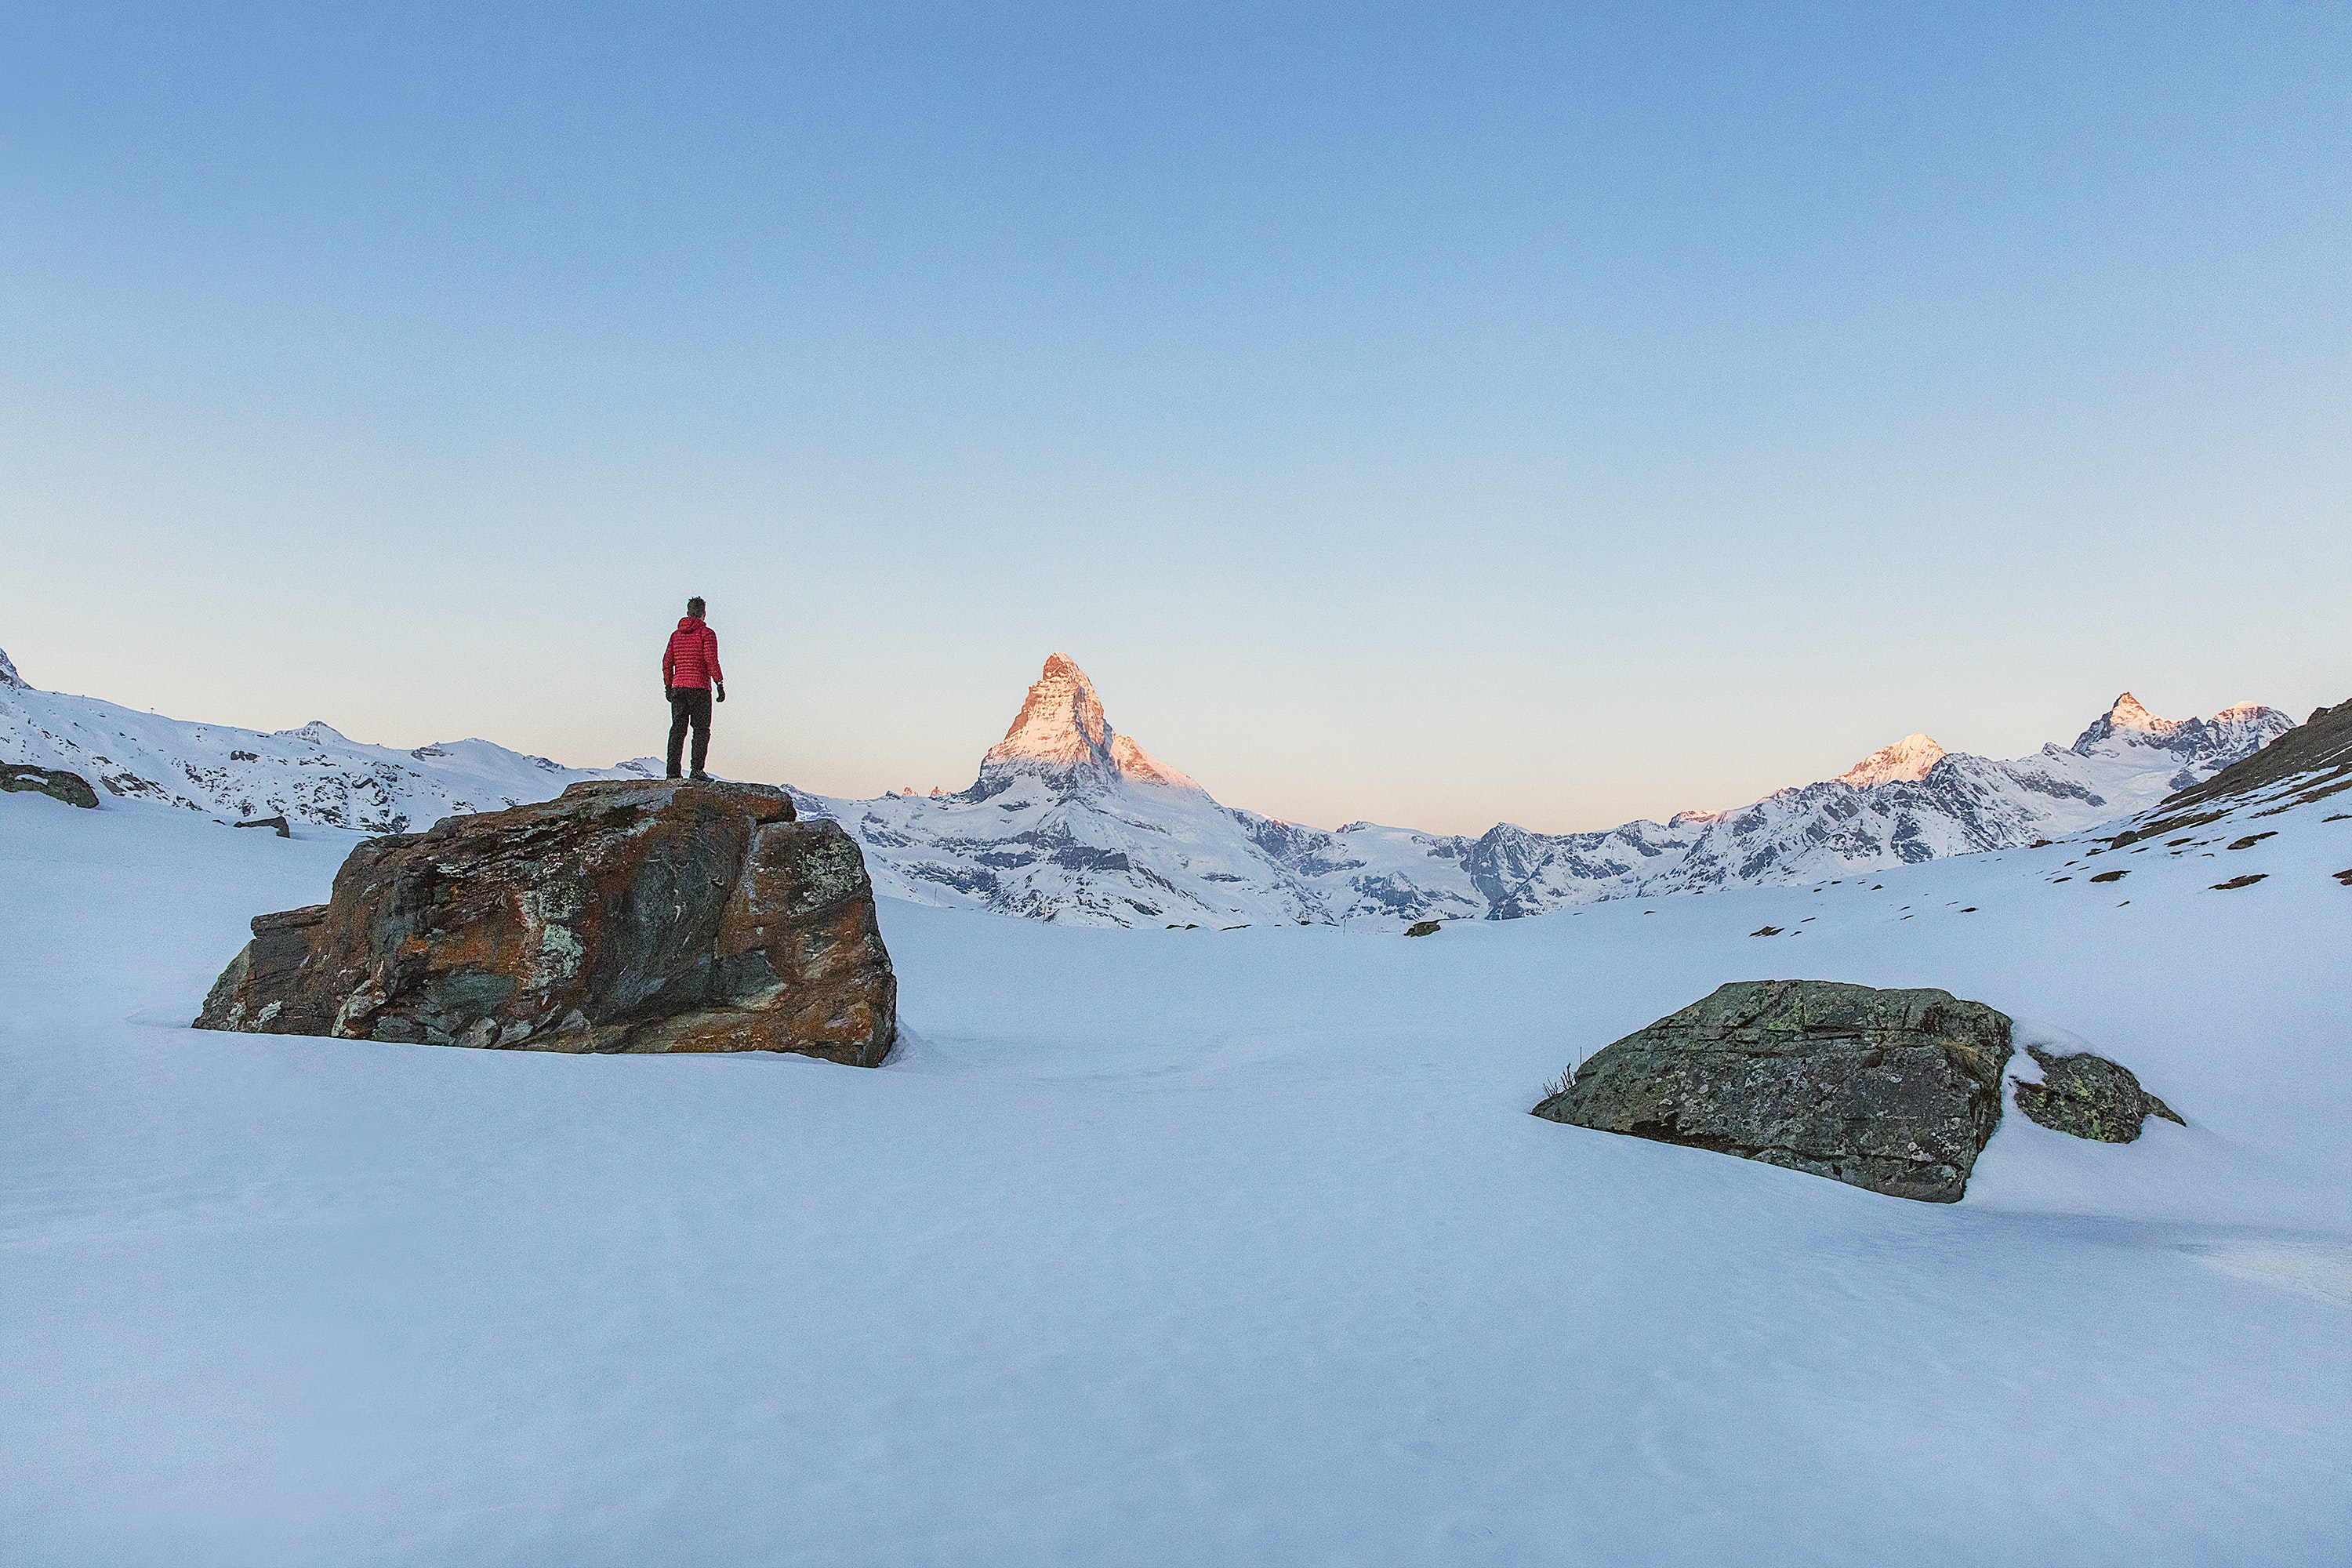 A man standing on a tall rock at the alps in Zermatt, Switzerland